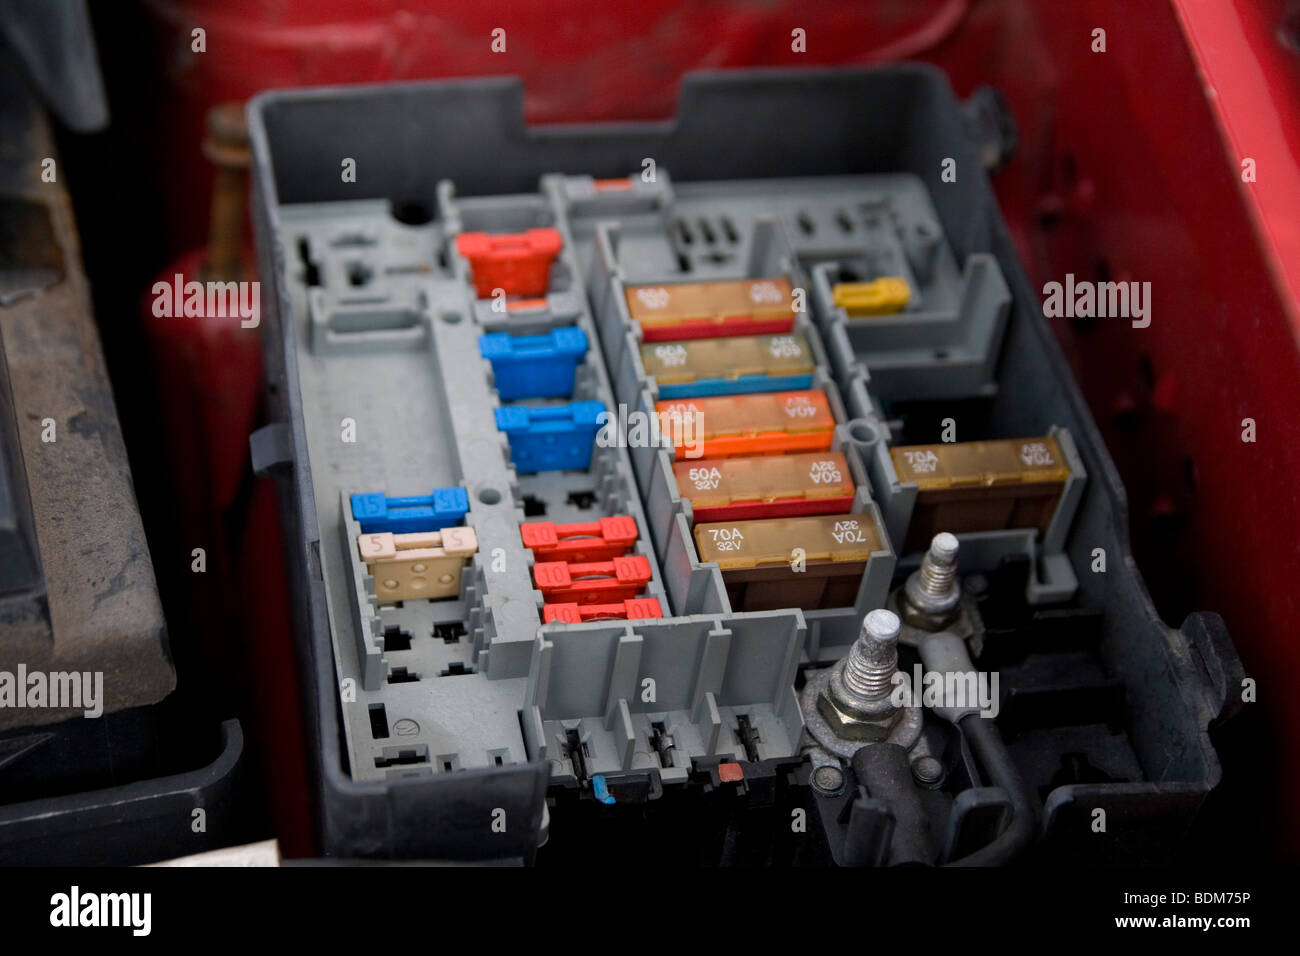 citroen berlingo fuse box stock photo 25645586 alamy Chrysler Voyager Van citroen berlingo fuse box BDM75P